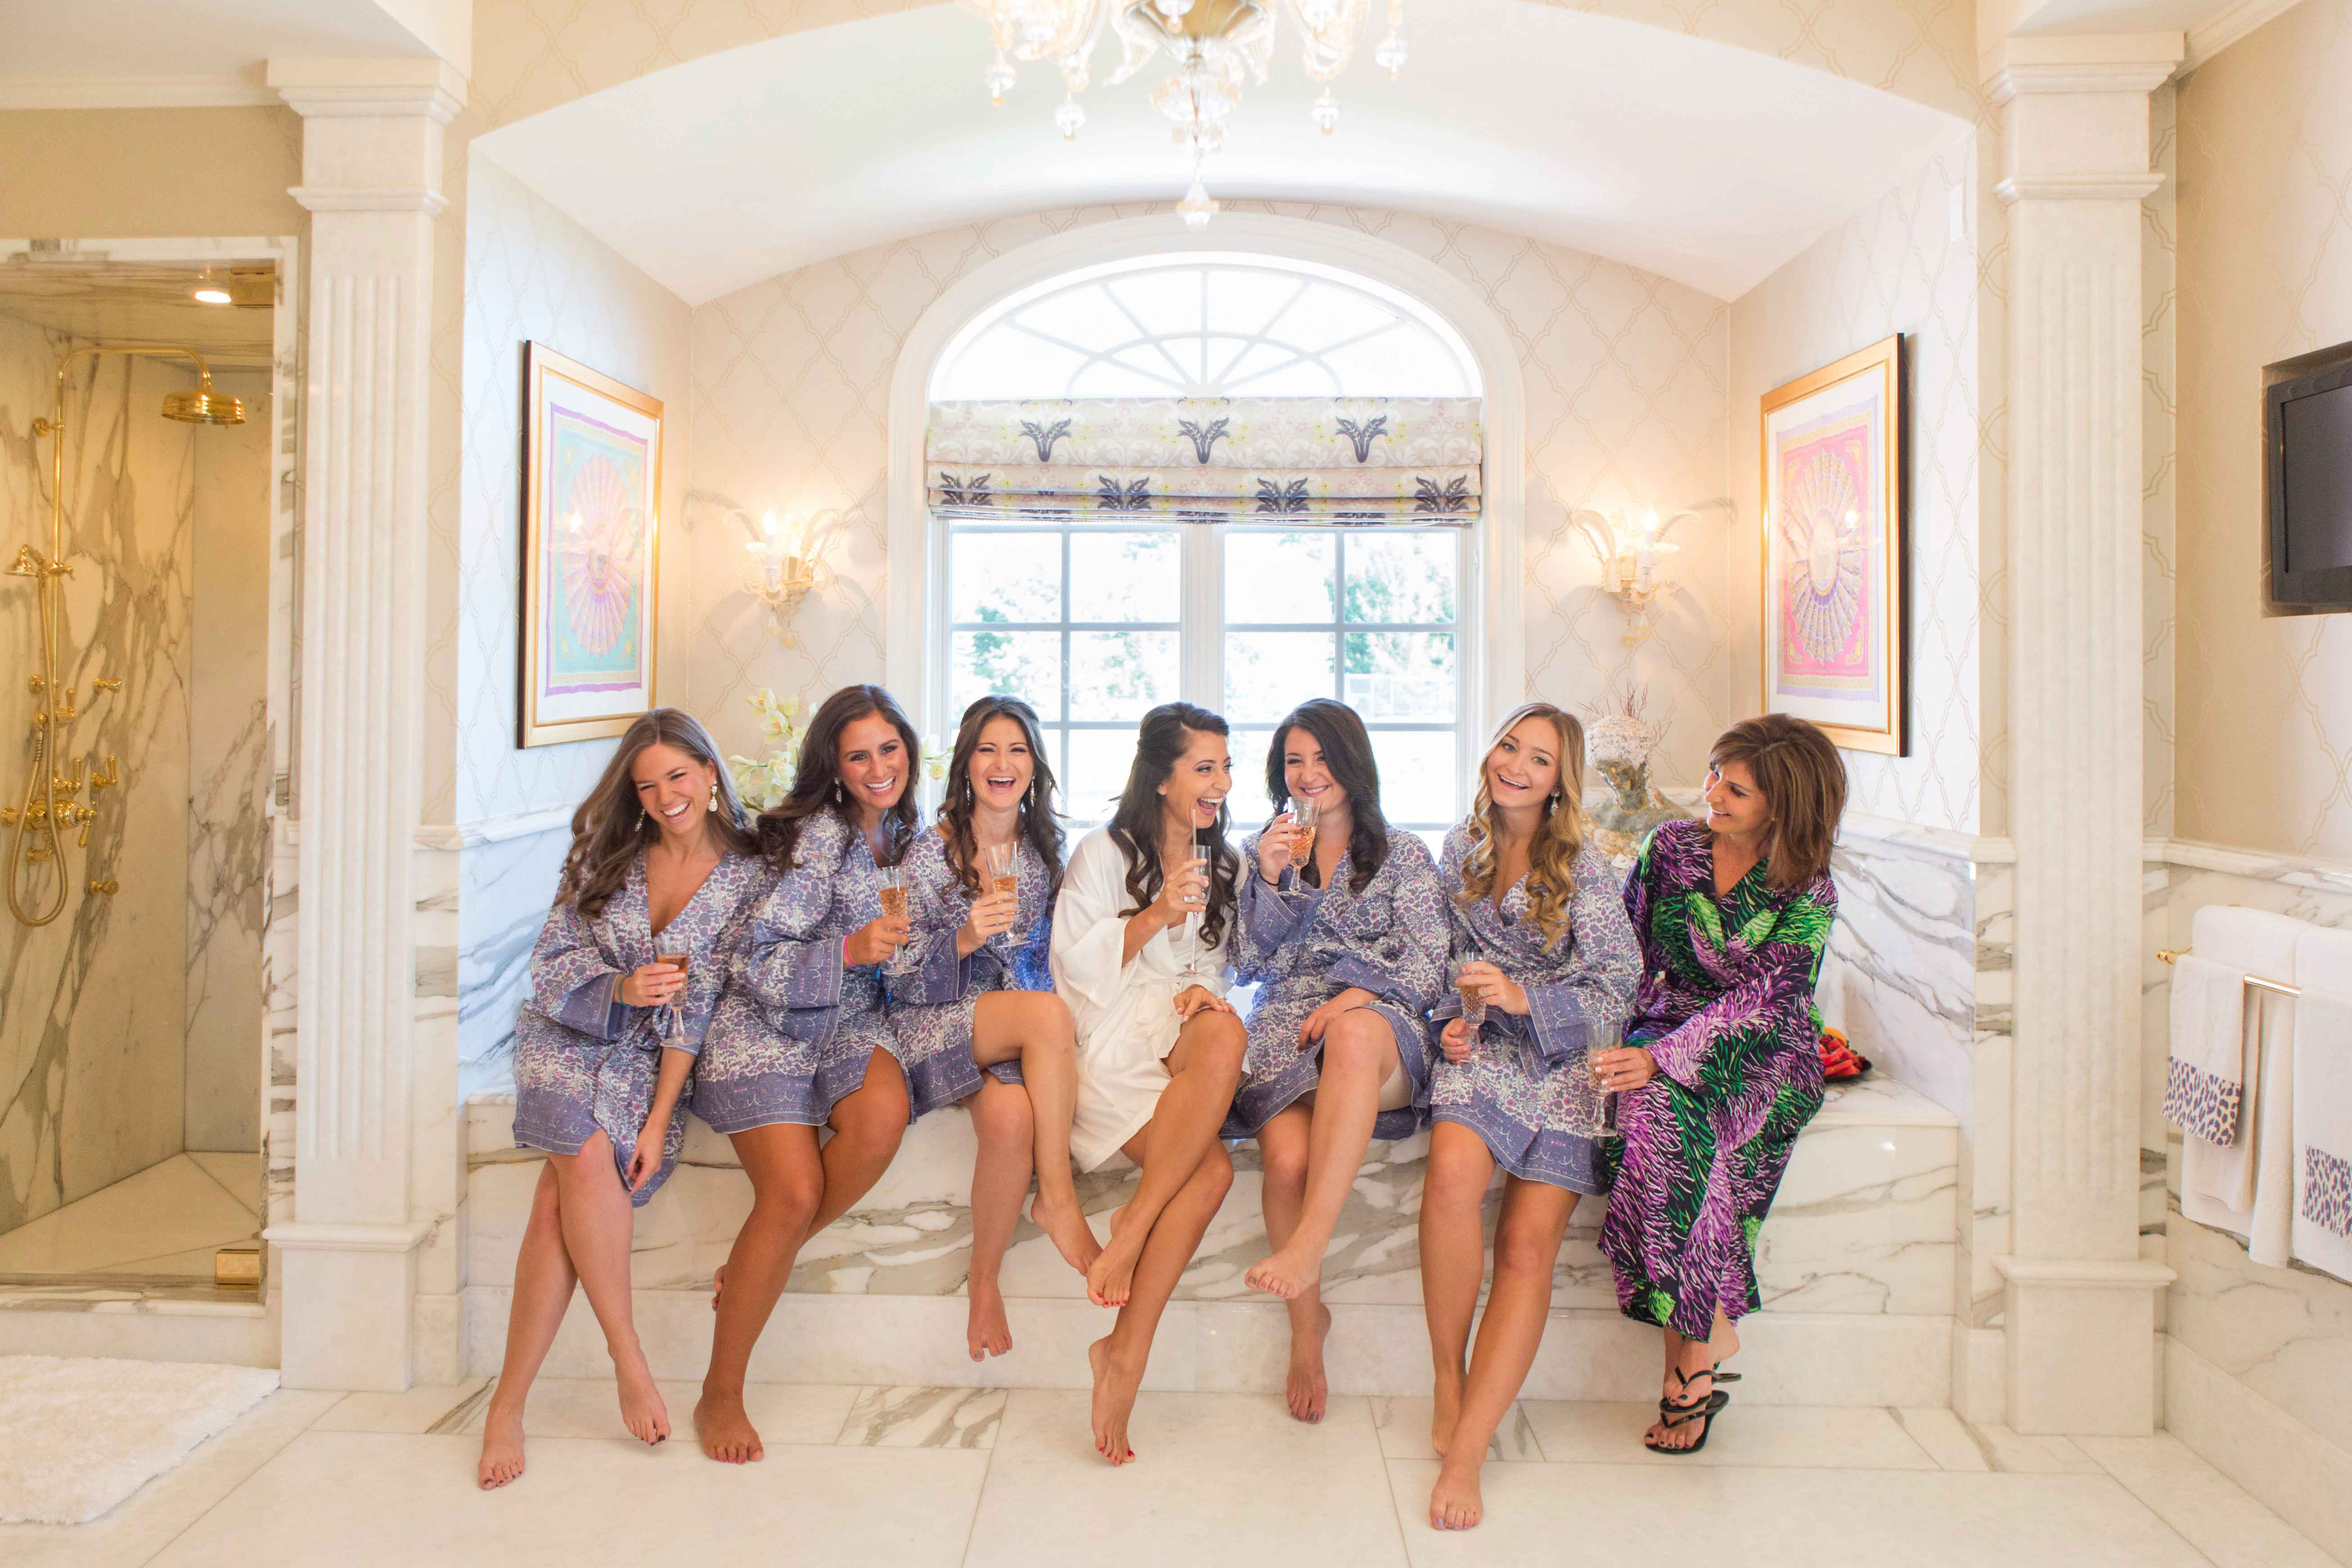 Bridesmaids in marble bathroom in floral print robes